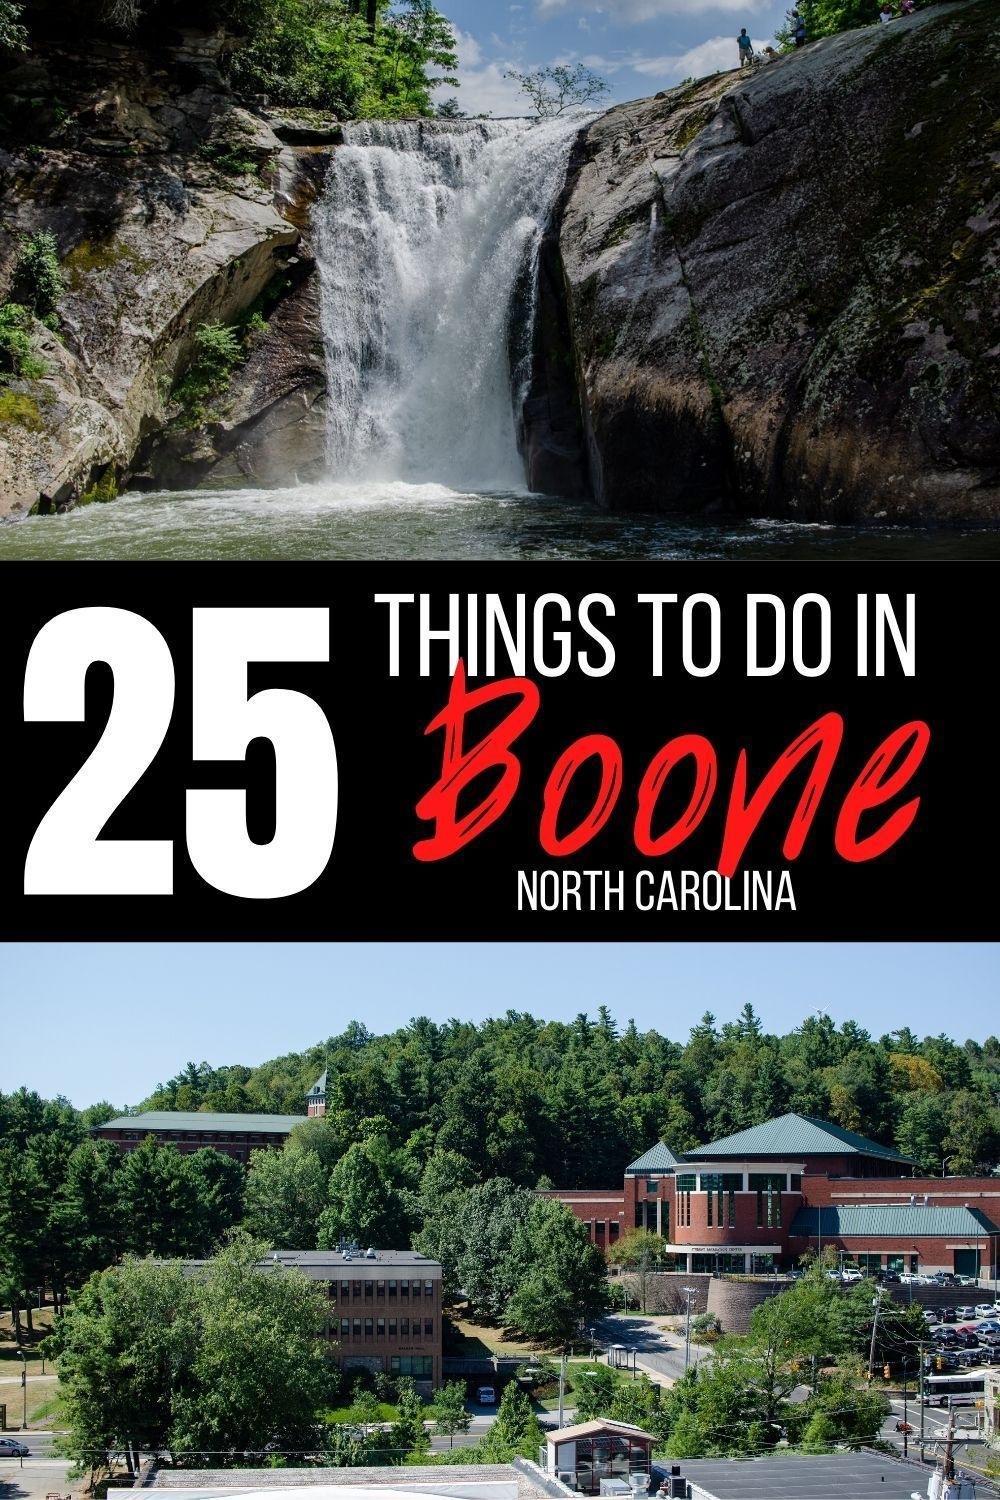 25 Things To Do In Boone Nc North Carolina Travel Cities In North Carolina Bryson City North Carolina